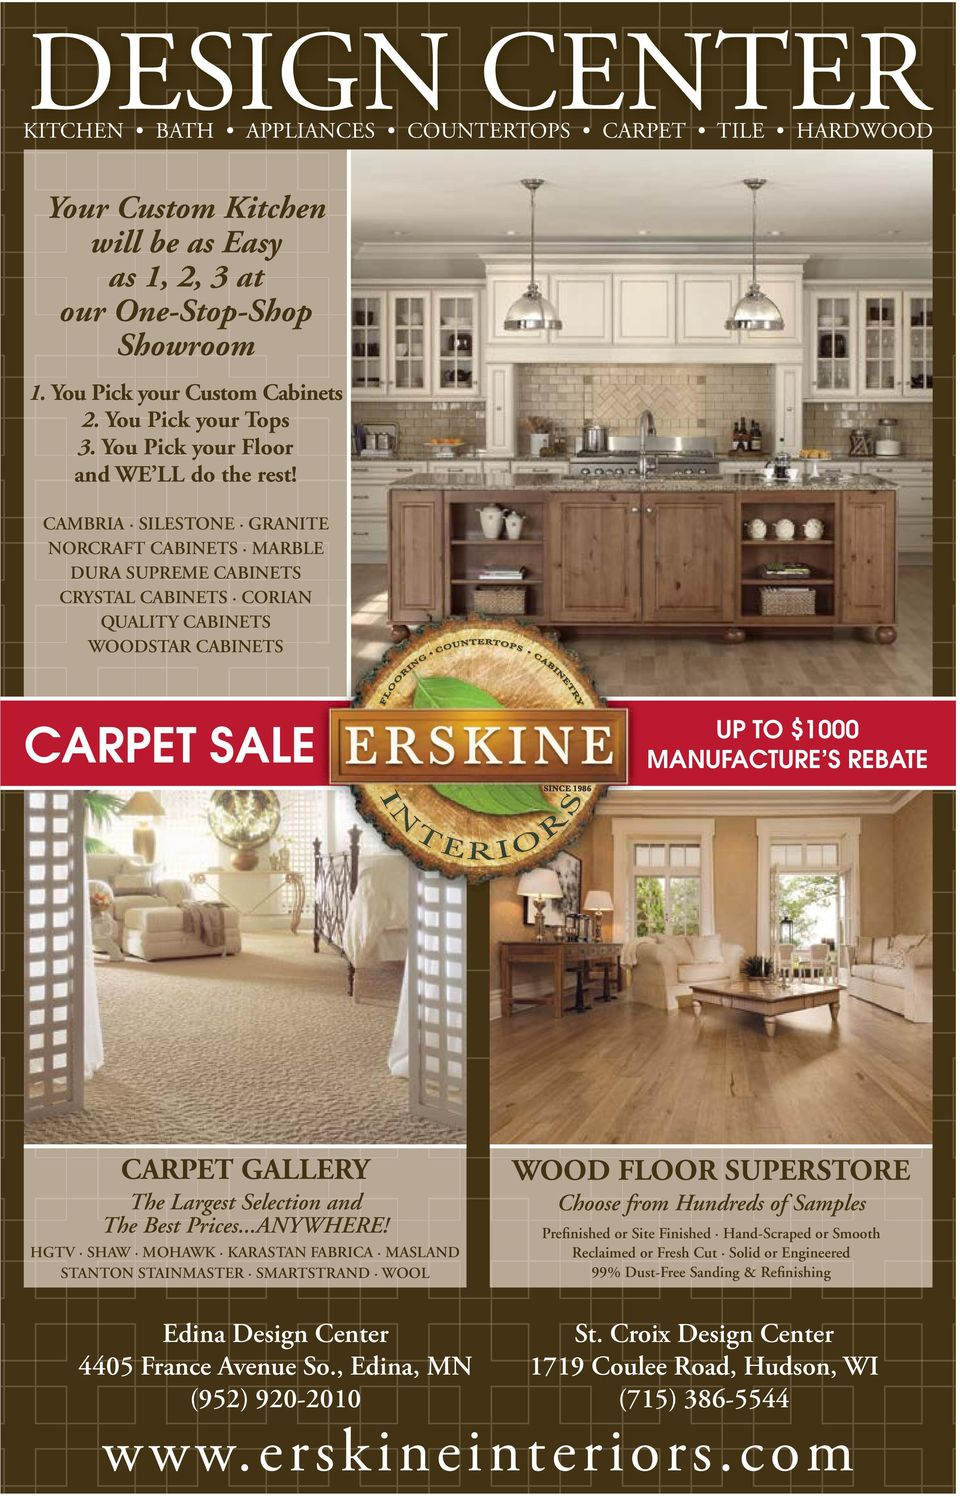 CAMBRIA SILESTONE GRANITE NORCRAFT CABINETS MARBLE DURA SUPREME CABINETS CRYSTAL CABINETS CORIAN QUALITY CABINETS WOODSTAR CABINETS CARPET SALE UP TO $1000 MANUFACTURE S REBATE CARPET GALLERY The